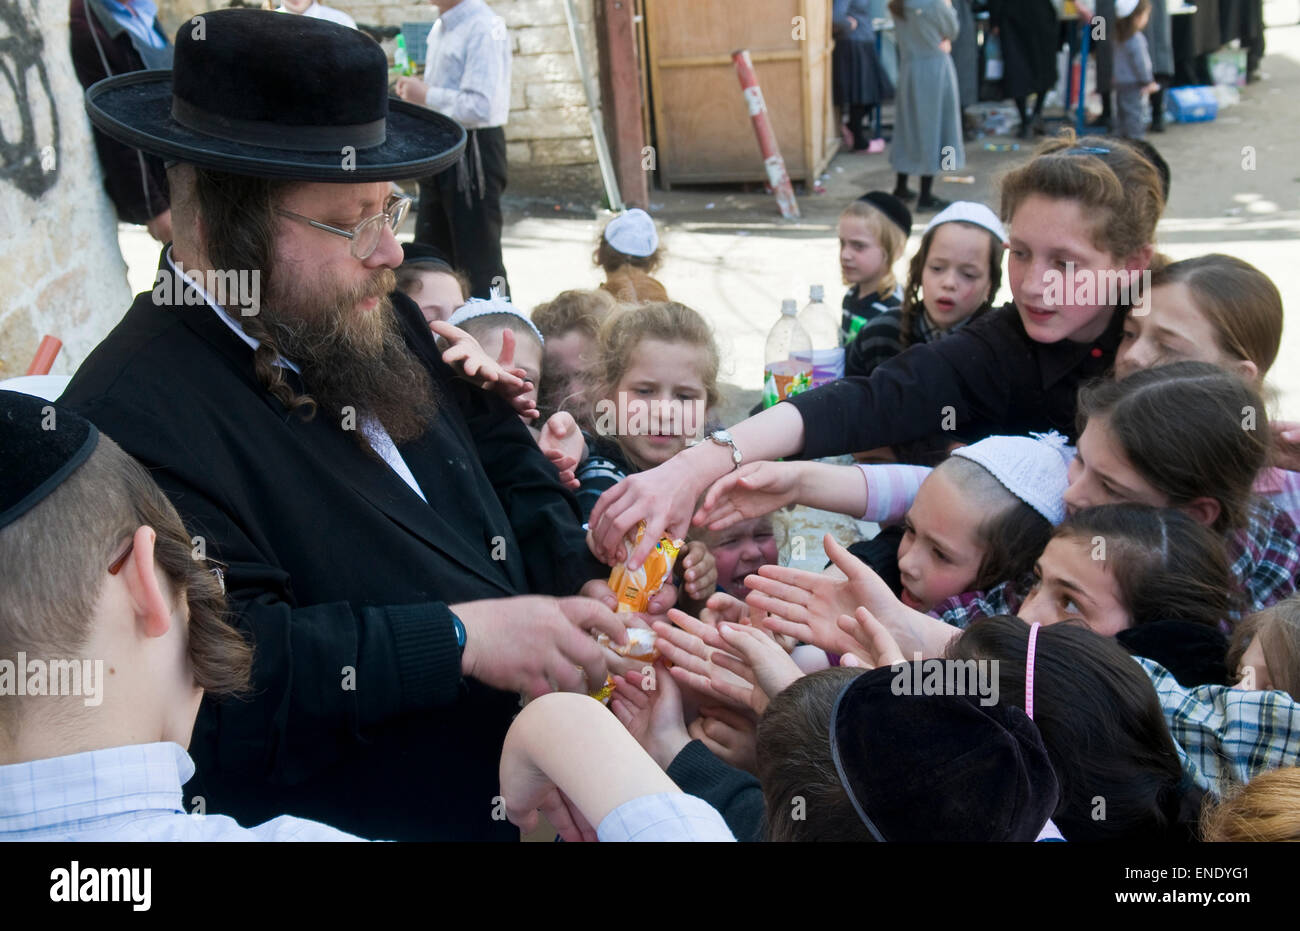 An Ultra Orthodox Jew man handing out food to poor children in Jerusalem Israel - Stock Image